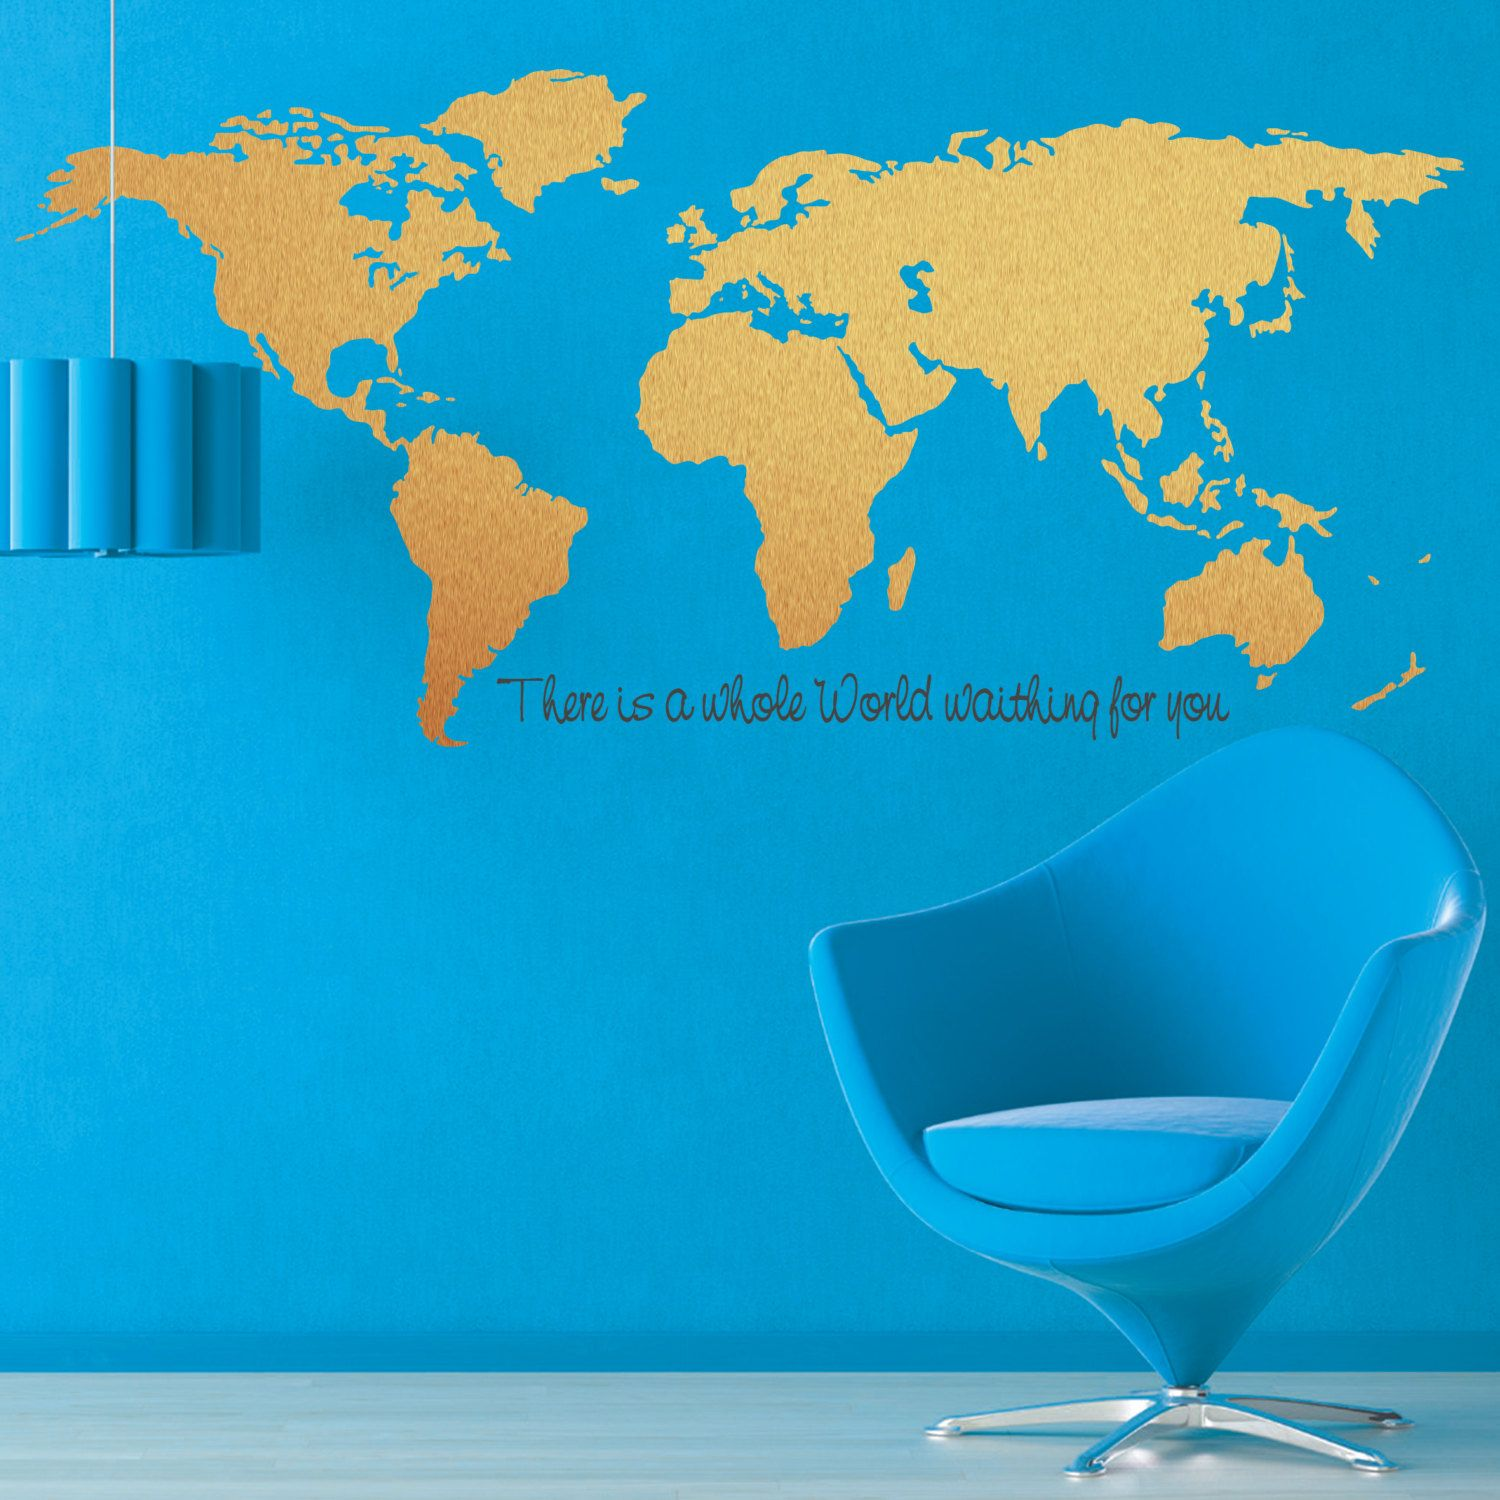 World map wall decal silver world map gold world map cooper world map wall decal silver world map gold world map cooper world map gumiabroncs Image collections